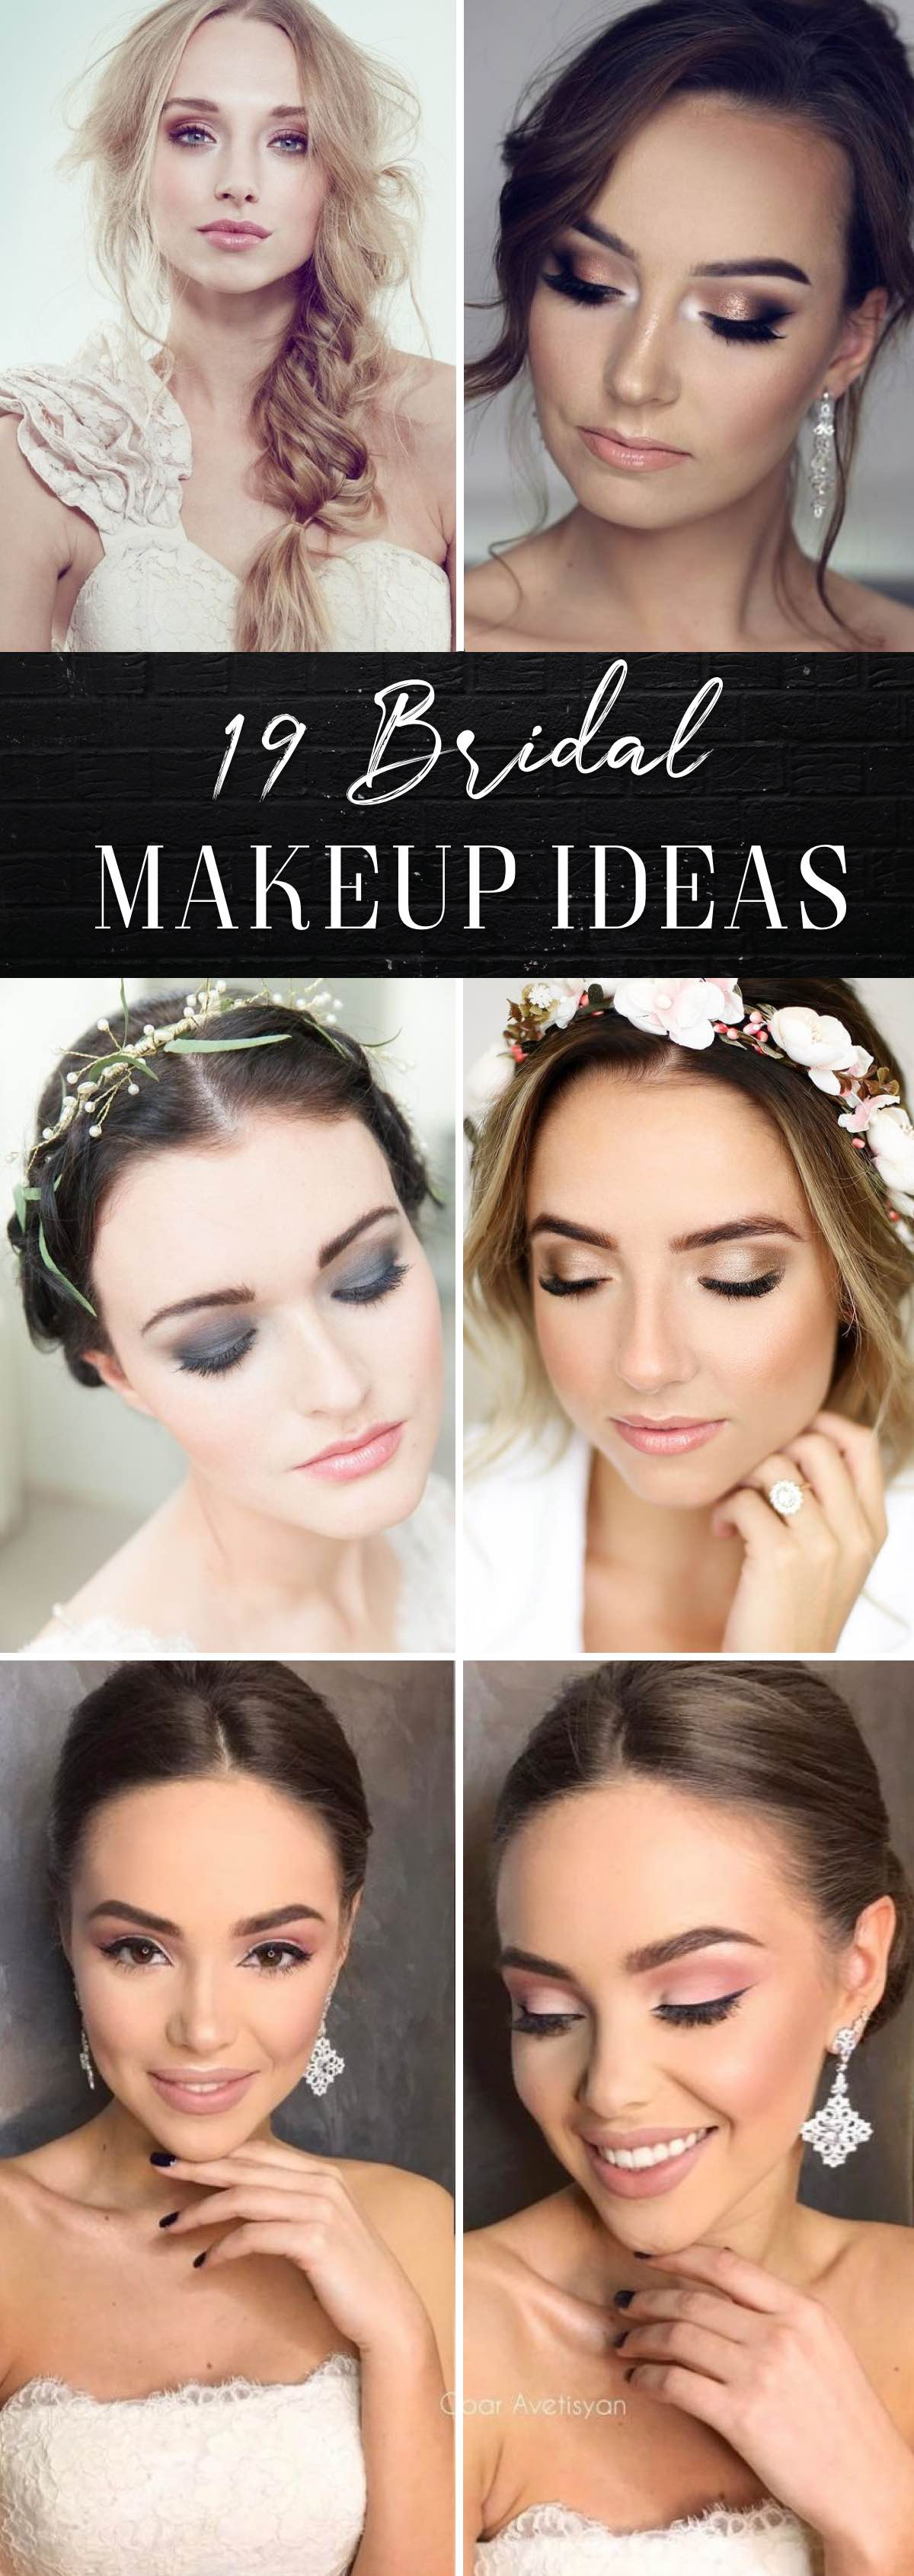 19 bridal makeup ideas for the most beautiful day of your life!